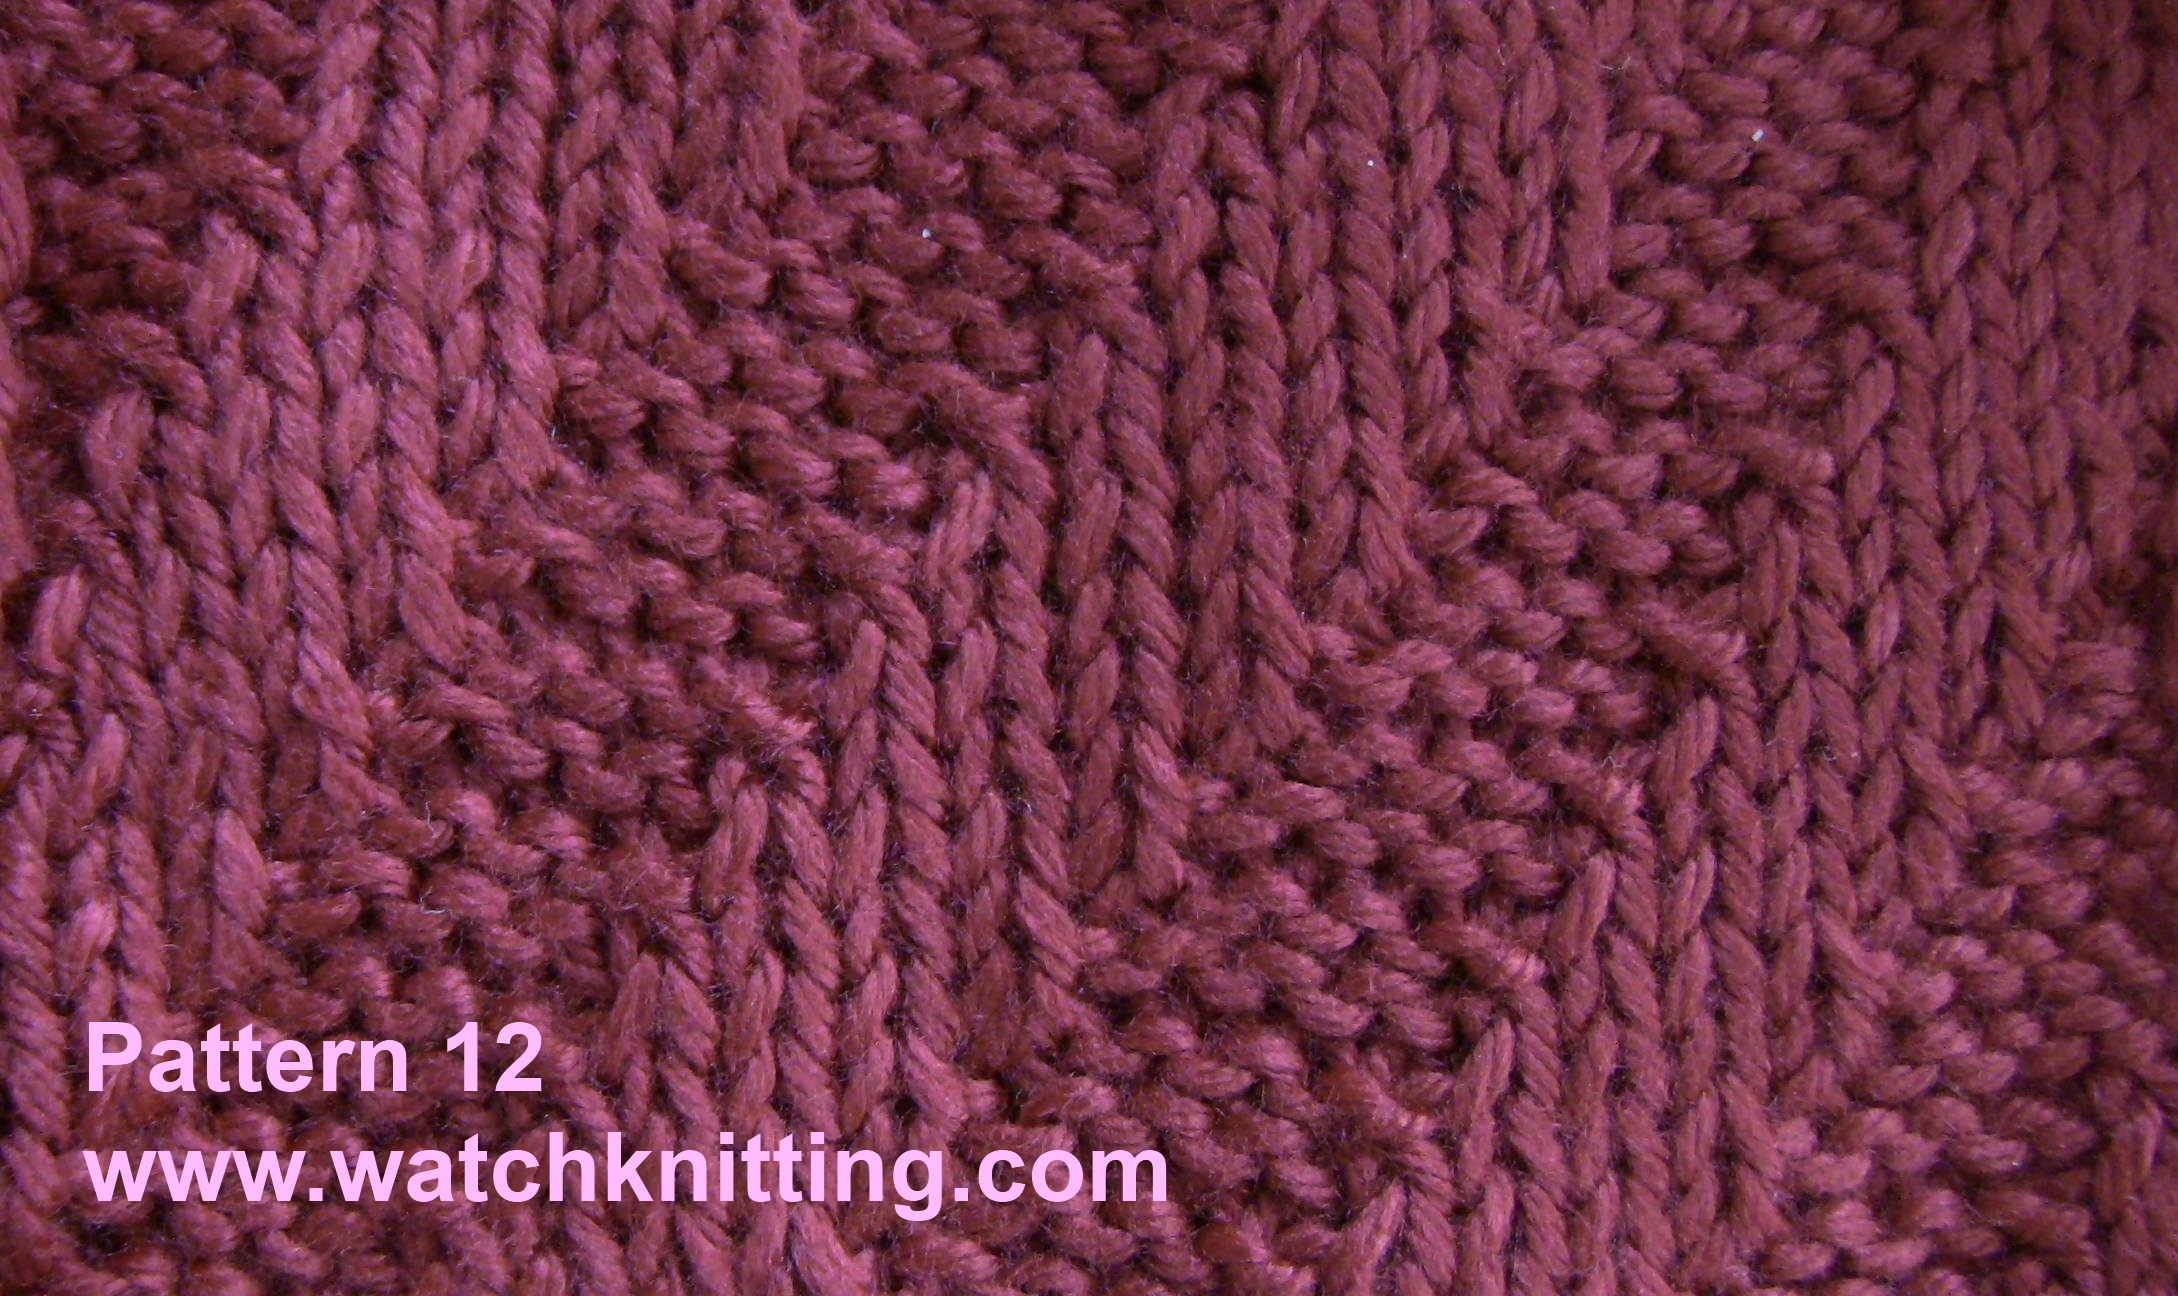 Knitting Instructions : Pattern 12 Simple Knitting Patterns www.watchknitting.com